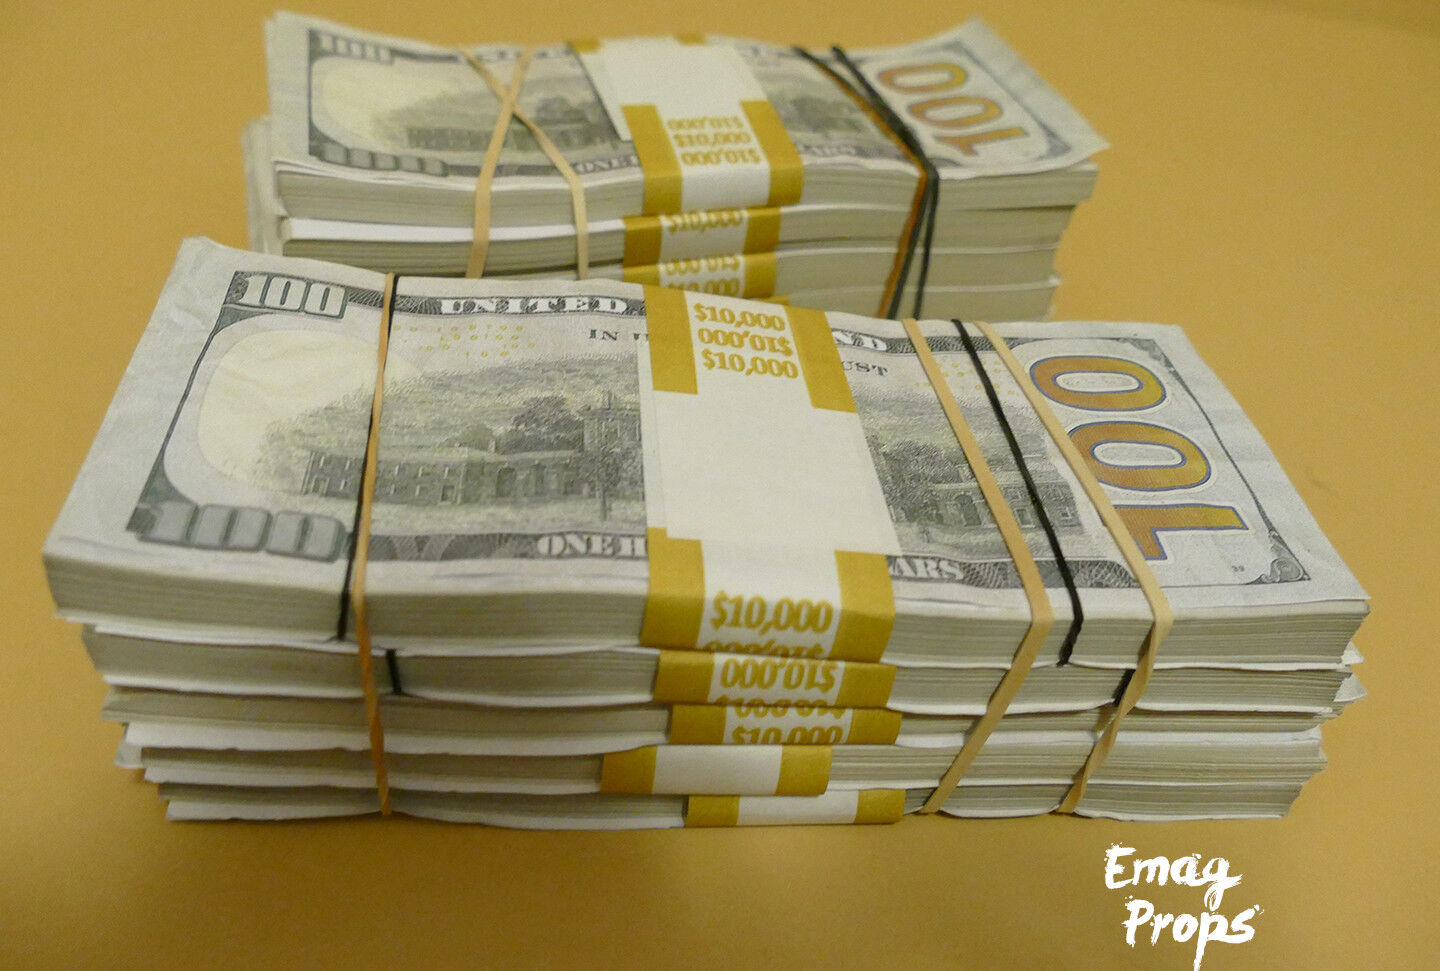 $100k - 2 Big Stack For Film, Movies, Videos Prank Fake Replica Copy Prop Money